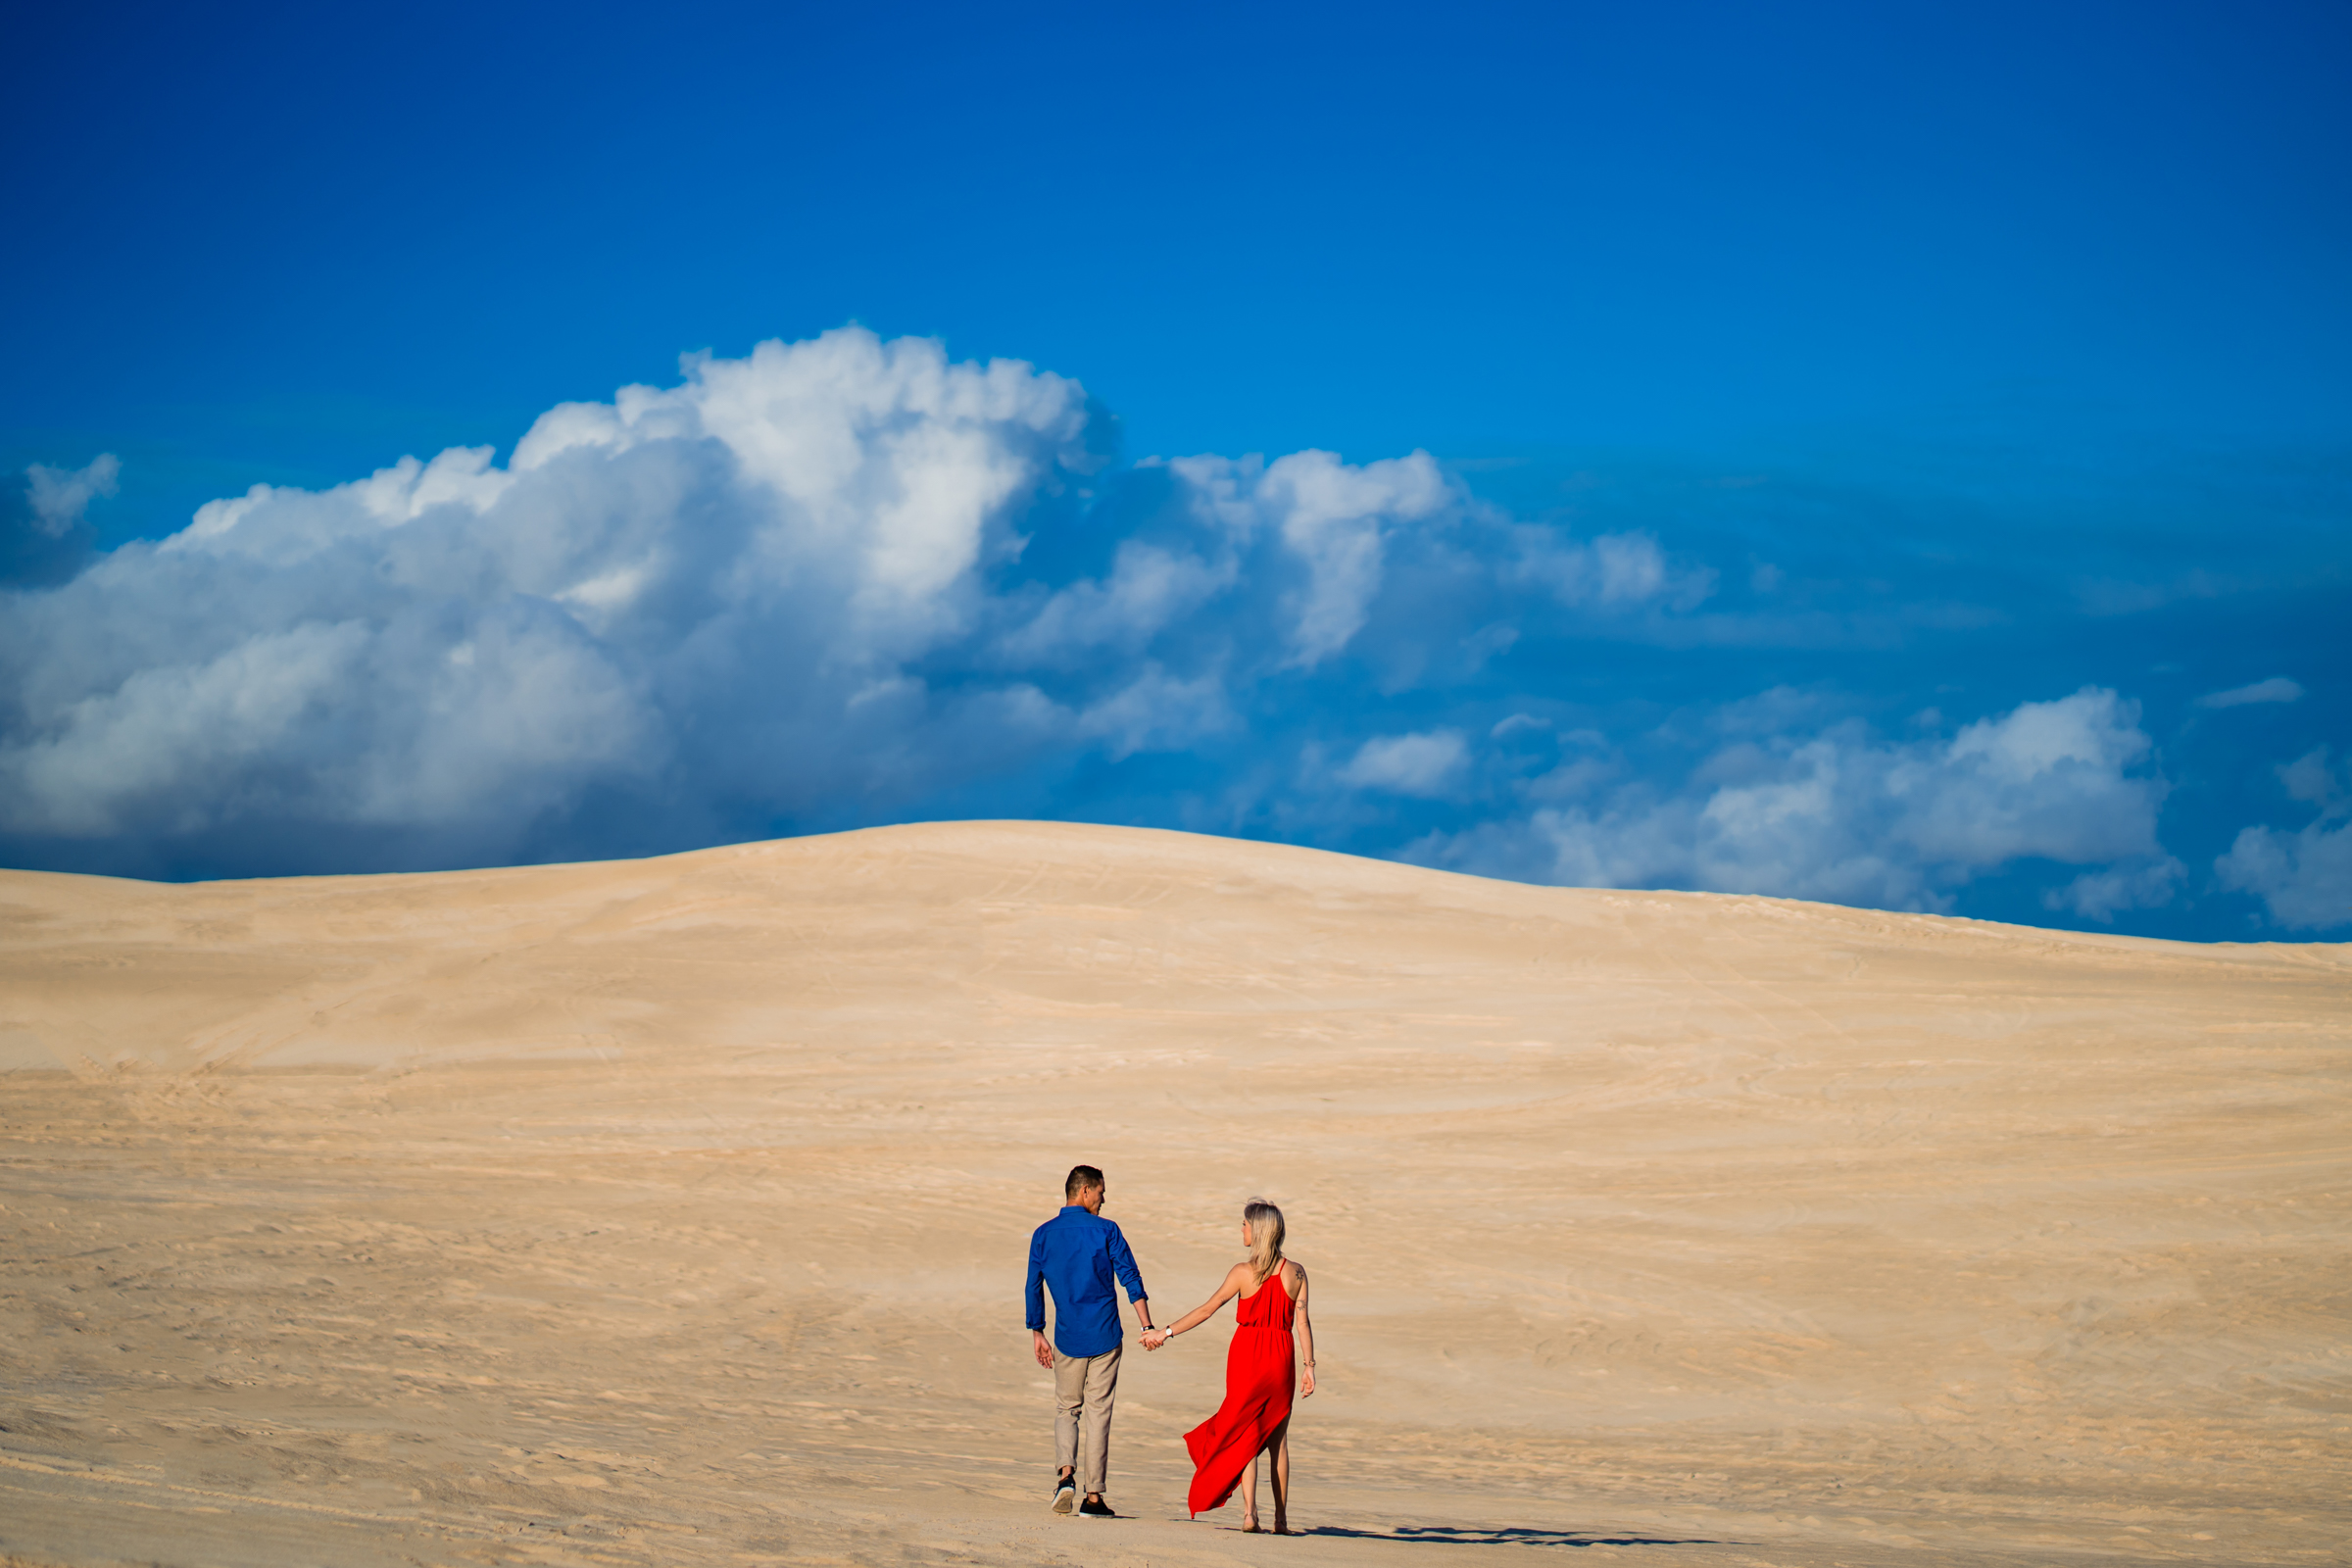 elopement-couple-in-epic-dune-and-blue-sky-setting-jacob-gordon-photography